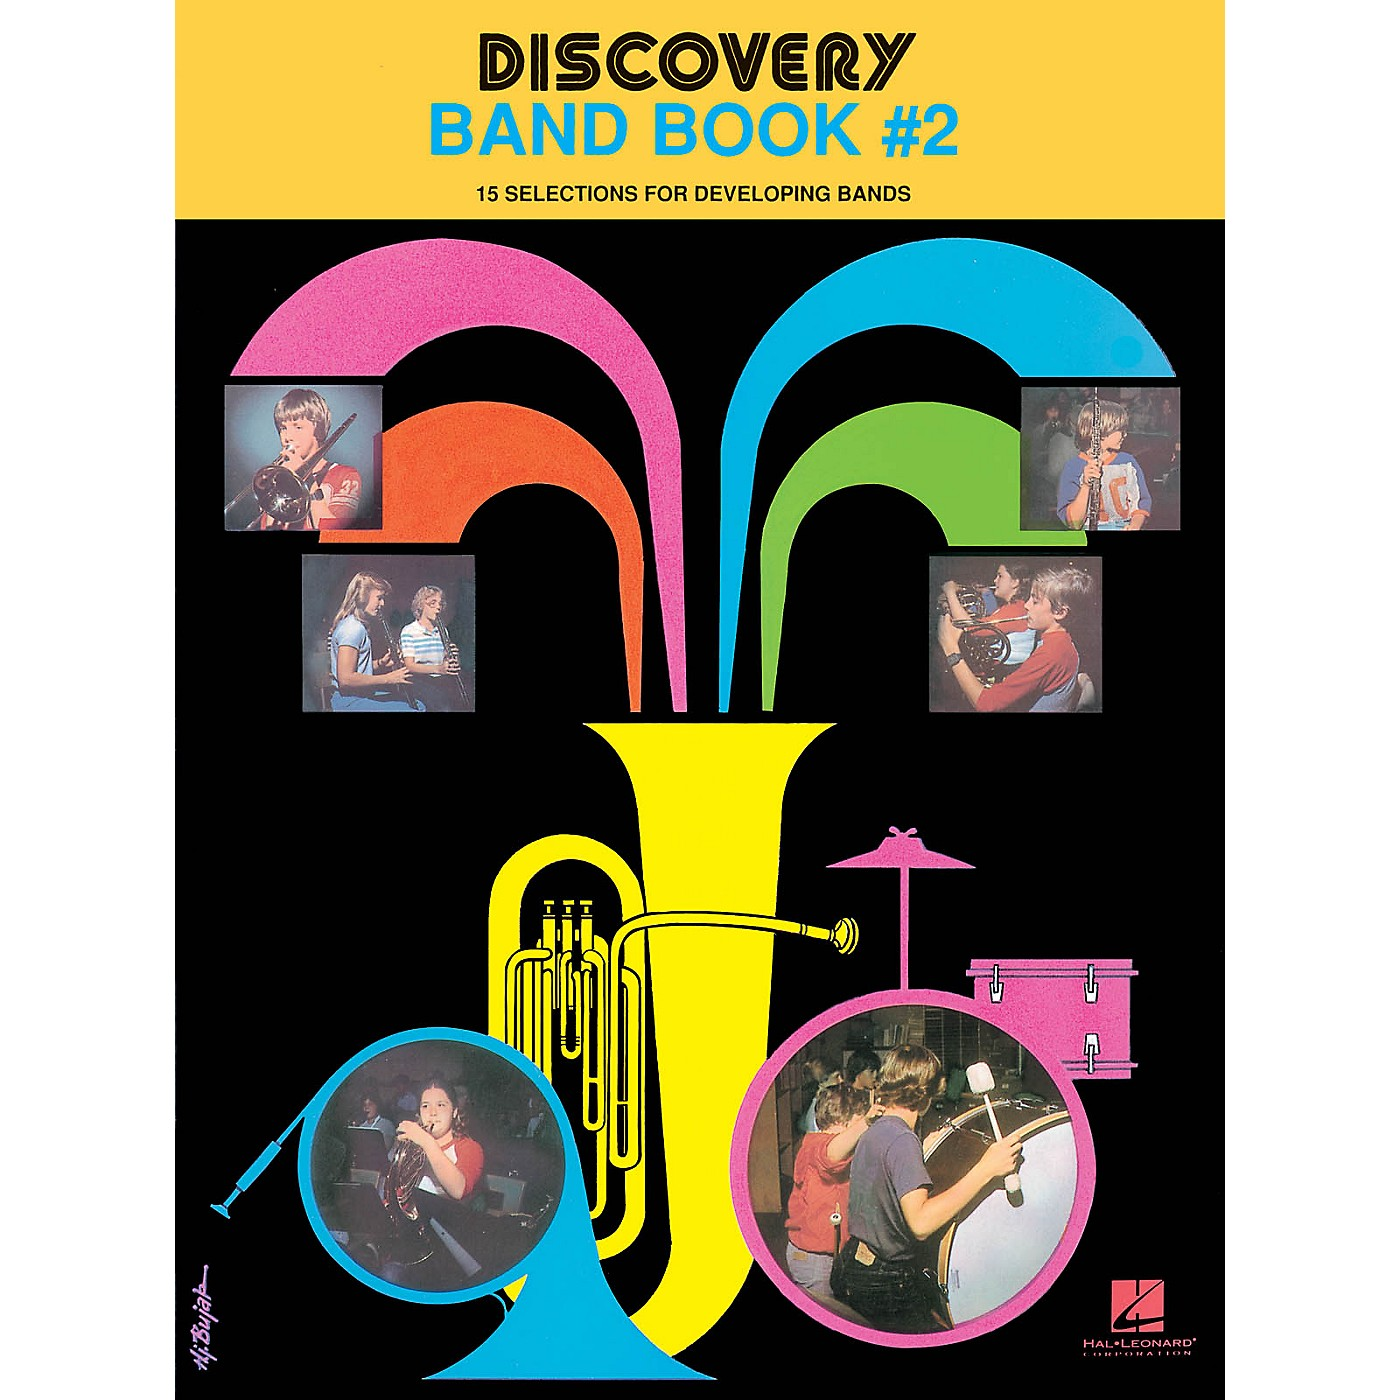 Hal Leonard Discovery Band Book #2 (B-flat Bass Clarinet) Concert Band Level 1 Composed by Anne McGinty thumbnail